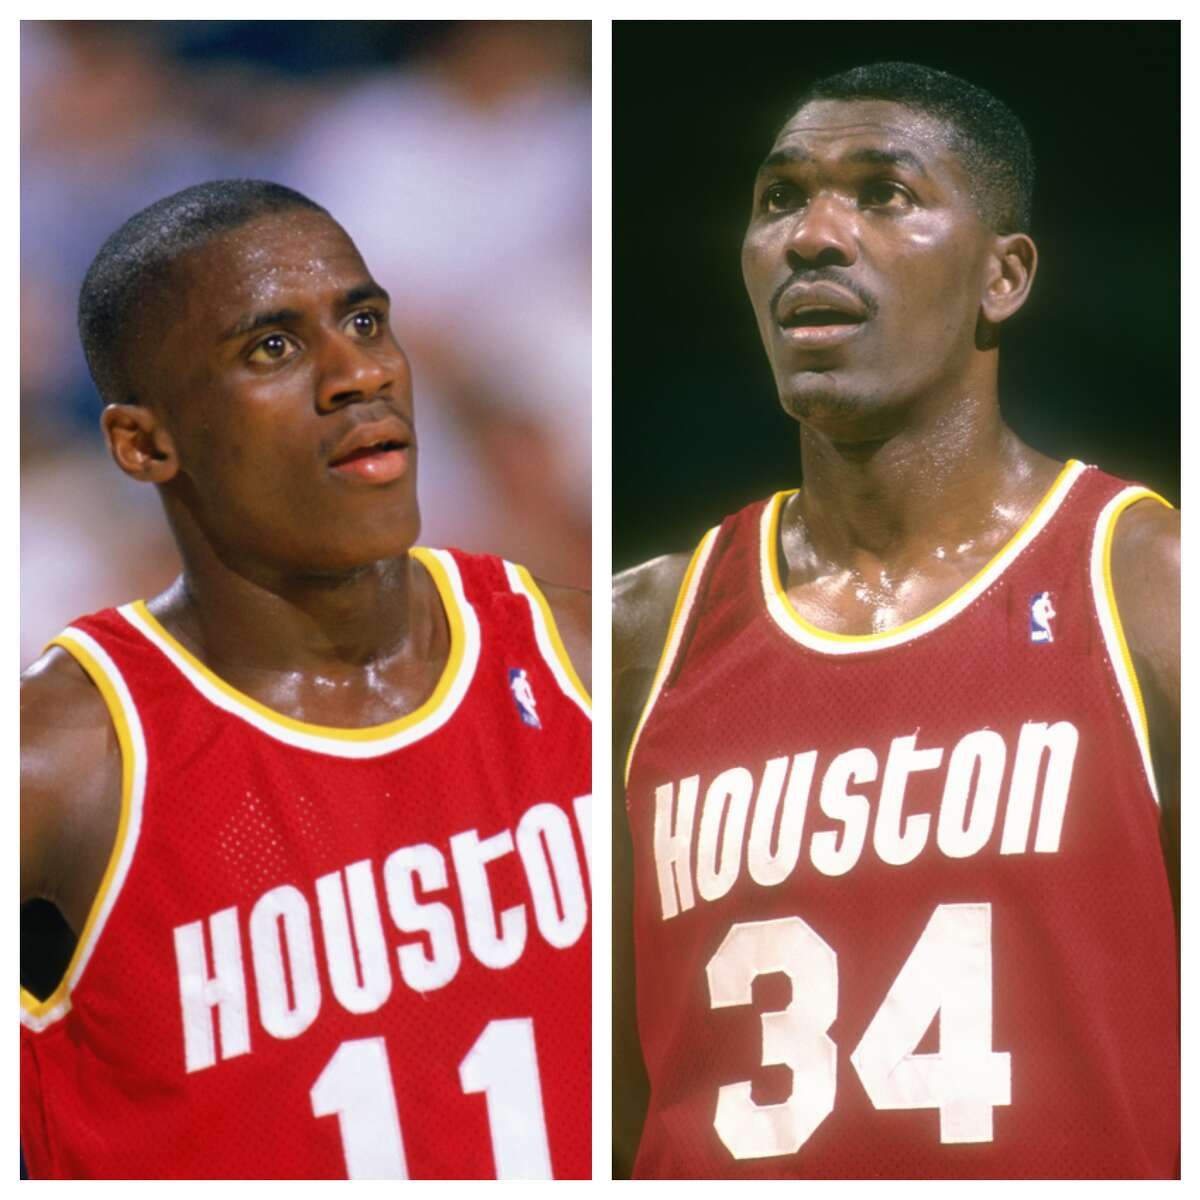 """Vernon Maxwell vs. Hakeem Olajuwon In NBATV's """"Clutch City"""" documentary, it was revealed that Olajuwon once slapped Maxwell in the locker room. In the first half of a road game, Maxwell spit on the court - which he did regularly. During halftime, Olajuwon told him to have some class and stop spitting on the floor. Words were exchanged, Maxwell defiantly spit on the locker room floor and got in Olajuwon's face. Olajuwon responded with a slap before teammates quickly broke them apart."""